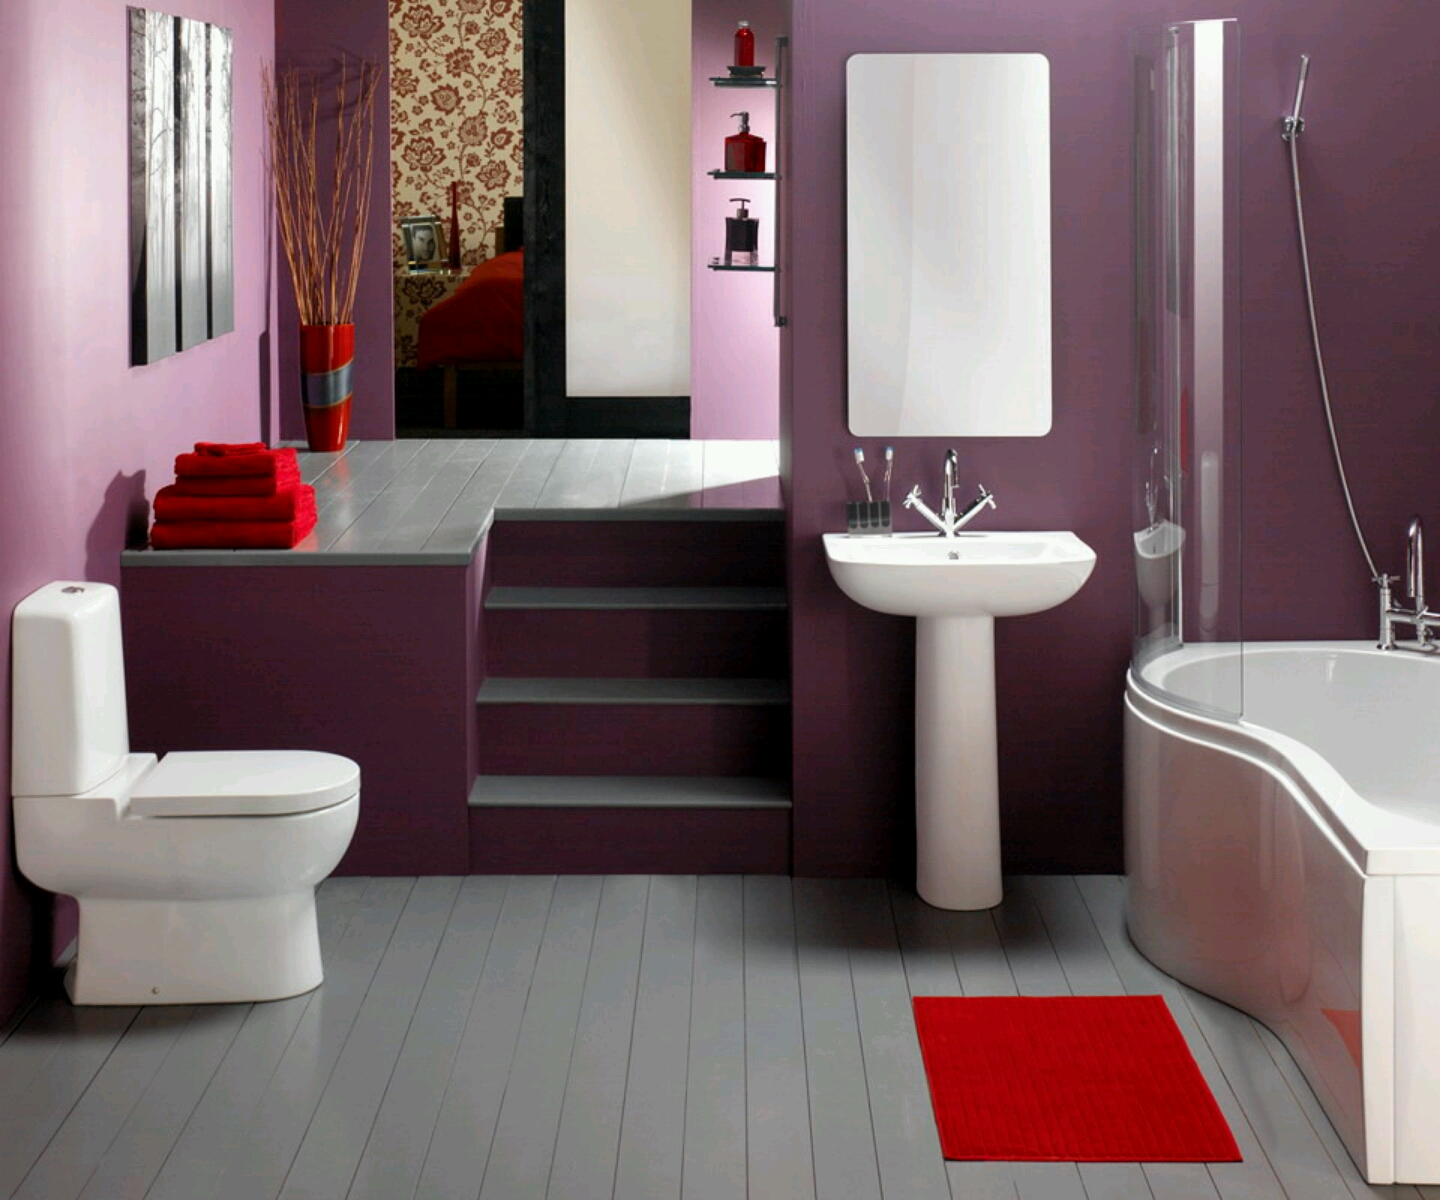 New home designs latest luxury modern bathrooms designs for New bathroom design ideas